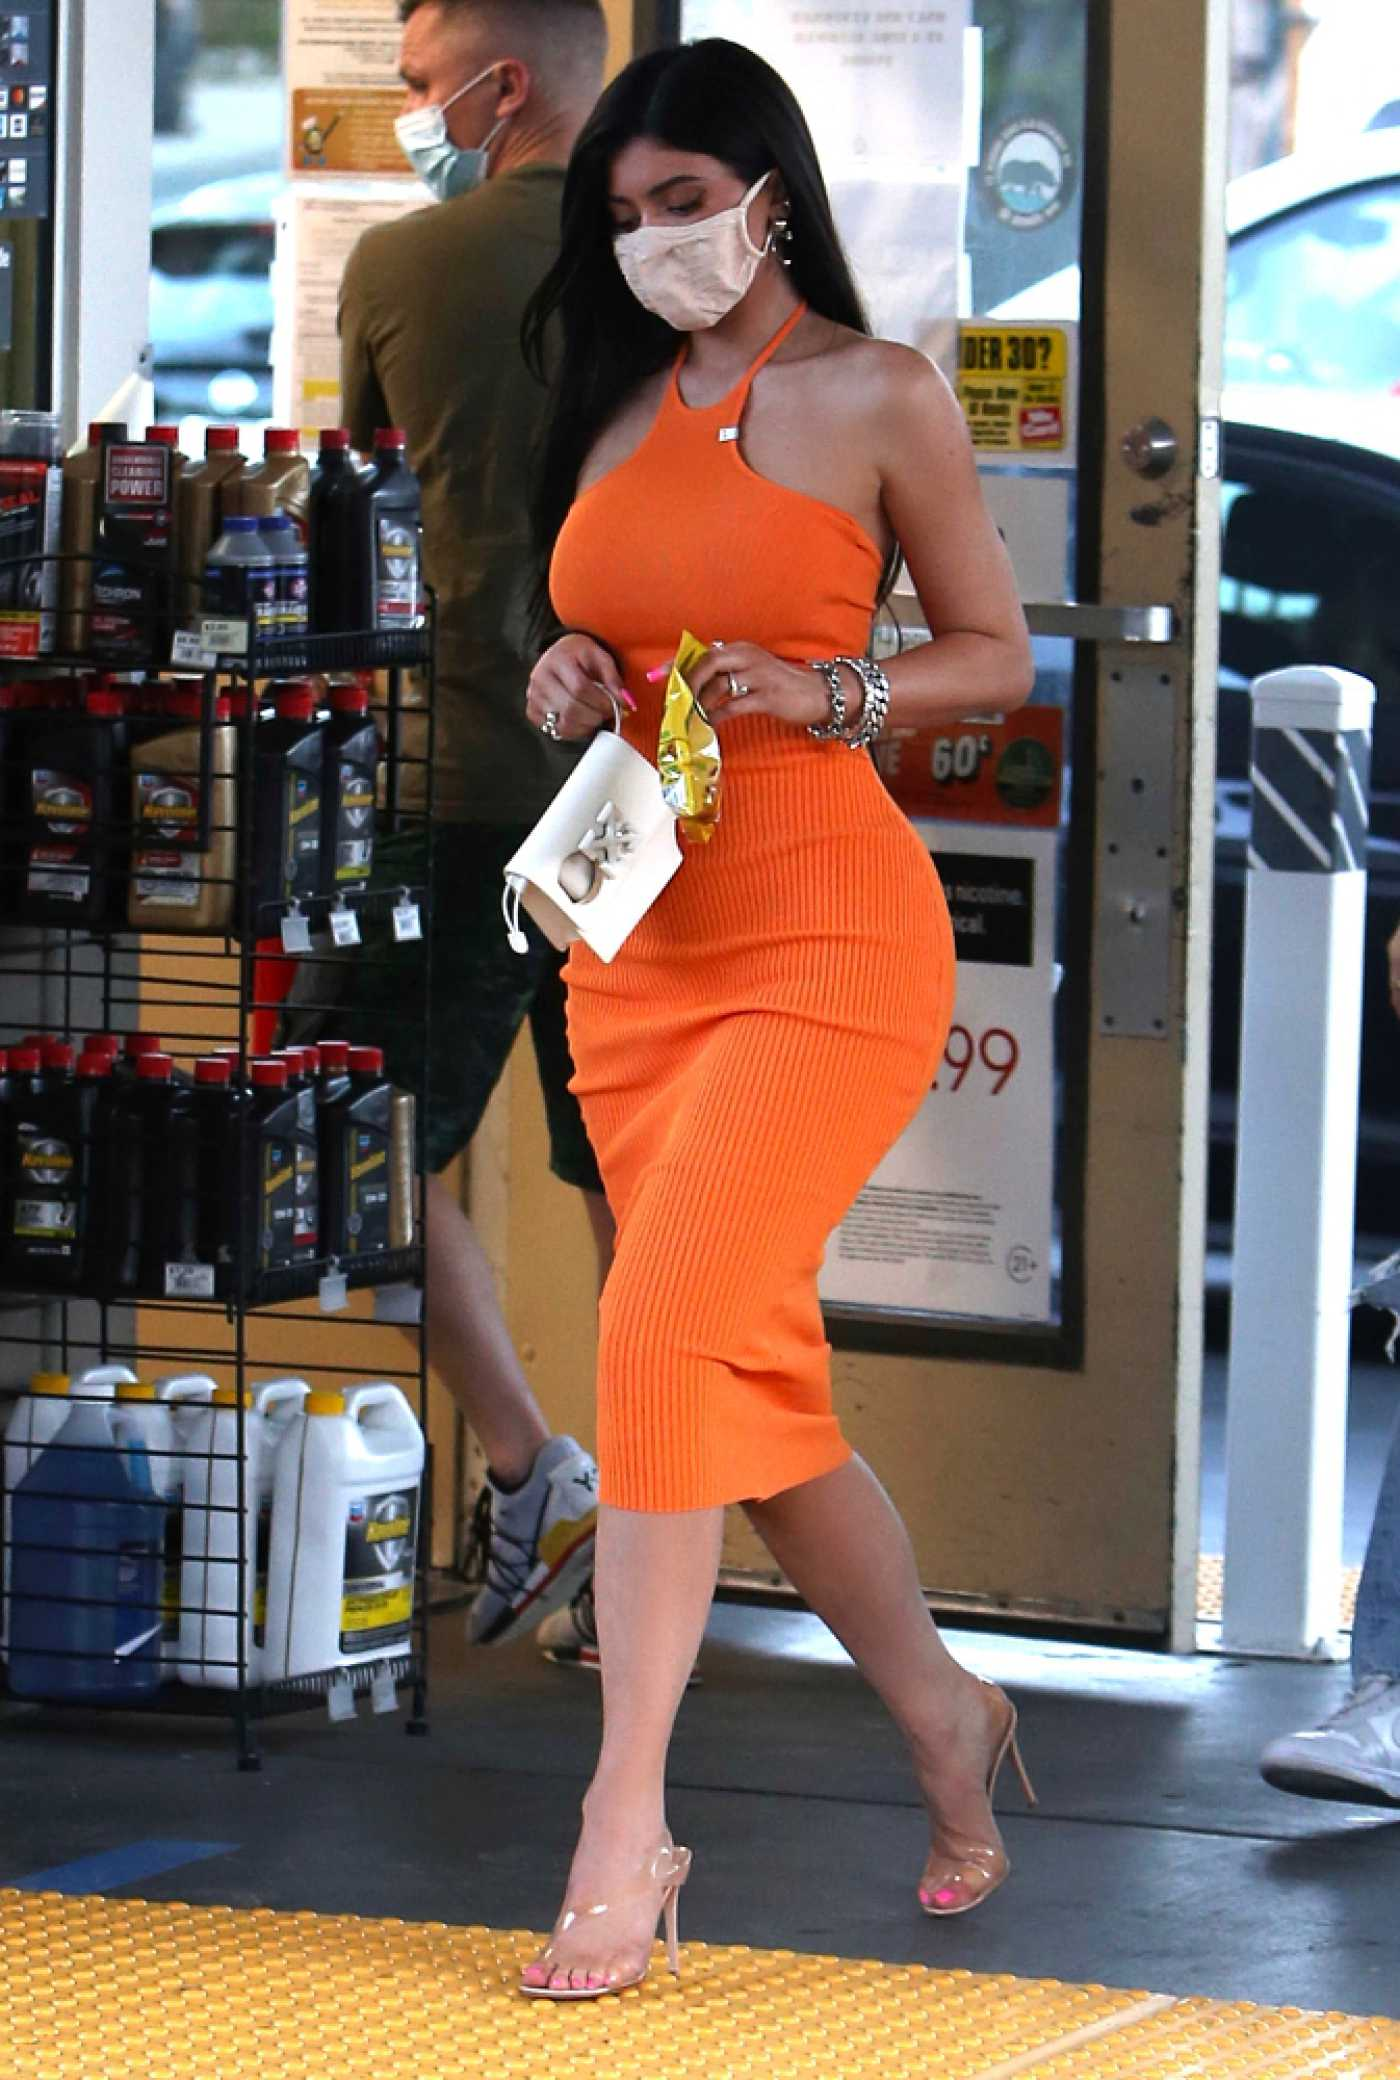 Kylie Jenner in an Orange Form Fitting Dress Was Seen Out in Bel Air 02/22/2021